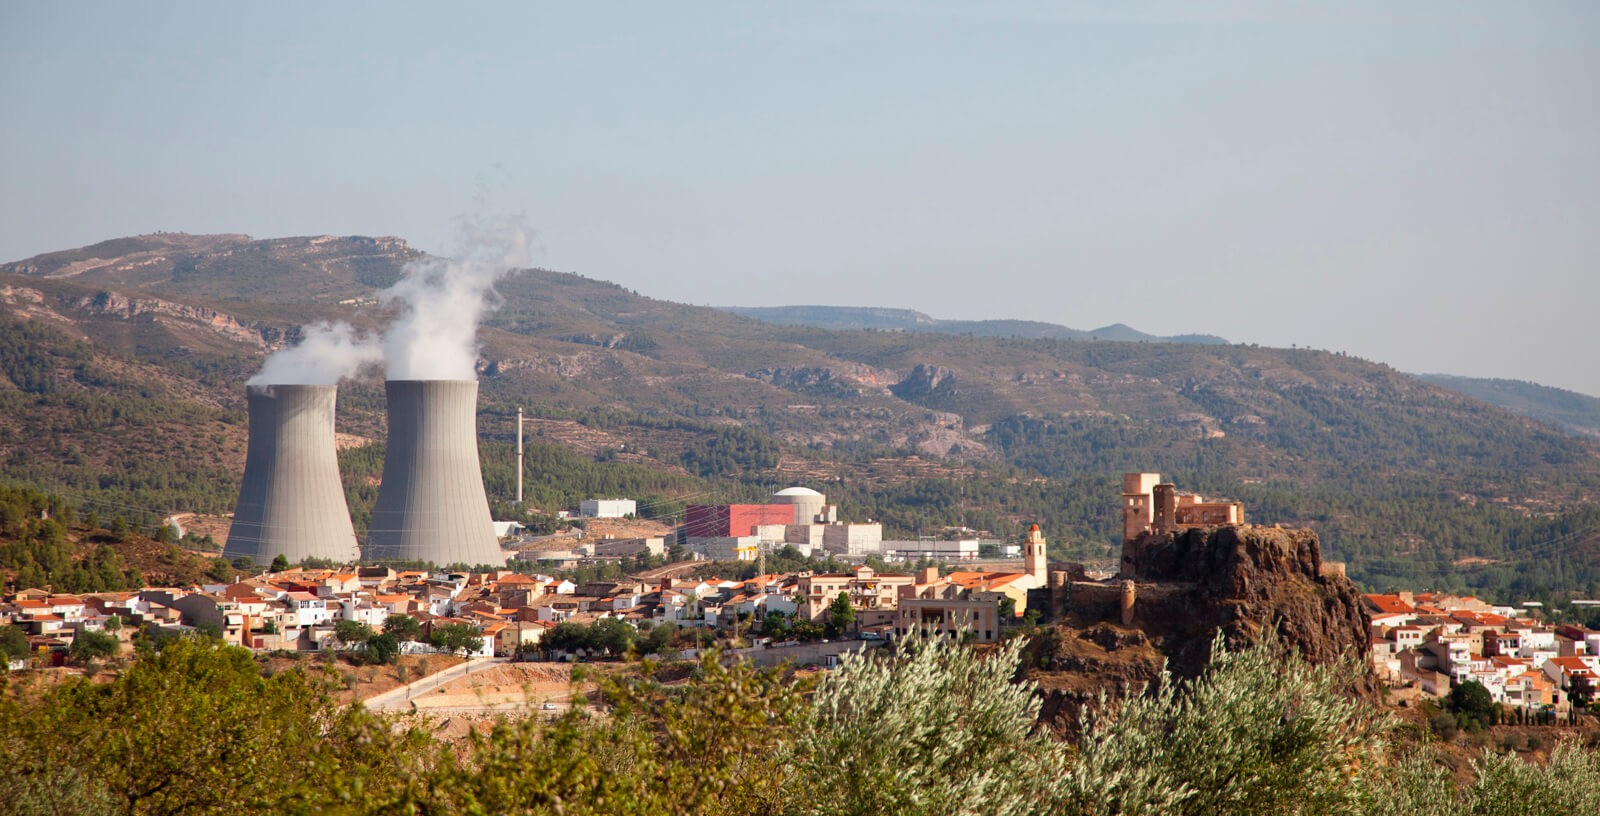 Idom_Nuclear_Services_Access_Building_Restricted_Area_Cofrentes_nuclear_power_plant_NPP_Zai_Aragon_shutterstock